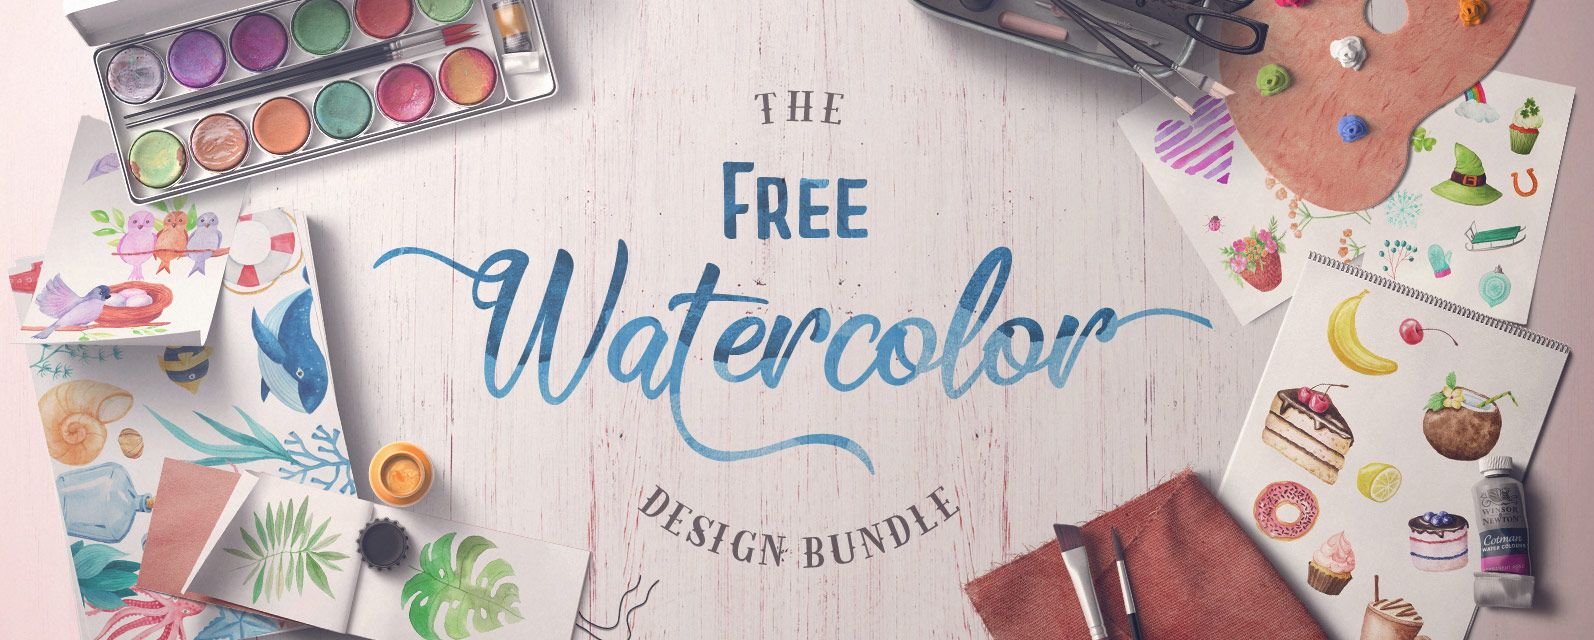 Download The Free Watercolor Bundle Cover Freebie Designbundles Design Bundles Free Font Watercolor Design